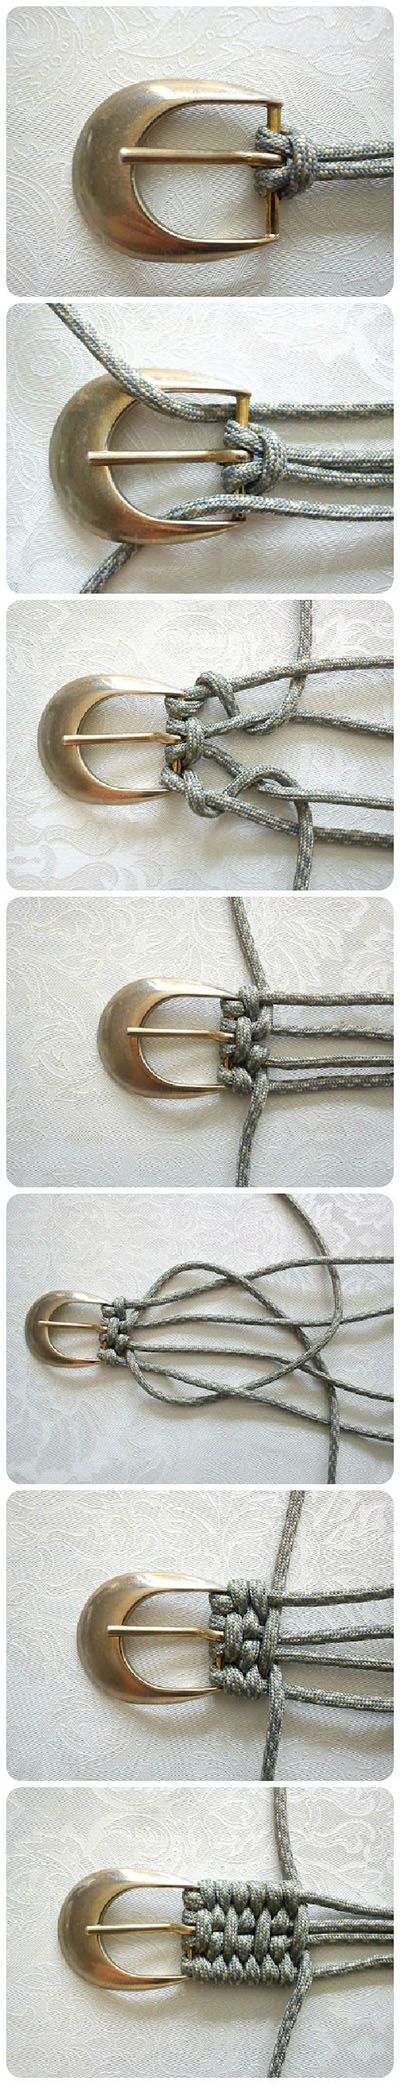 best images about knots macrame and other stringed things on